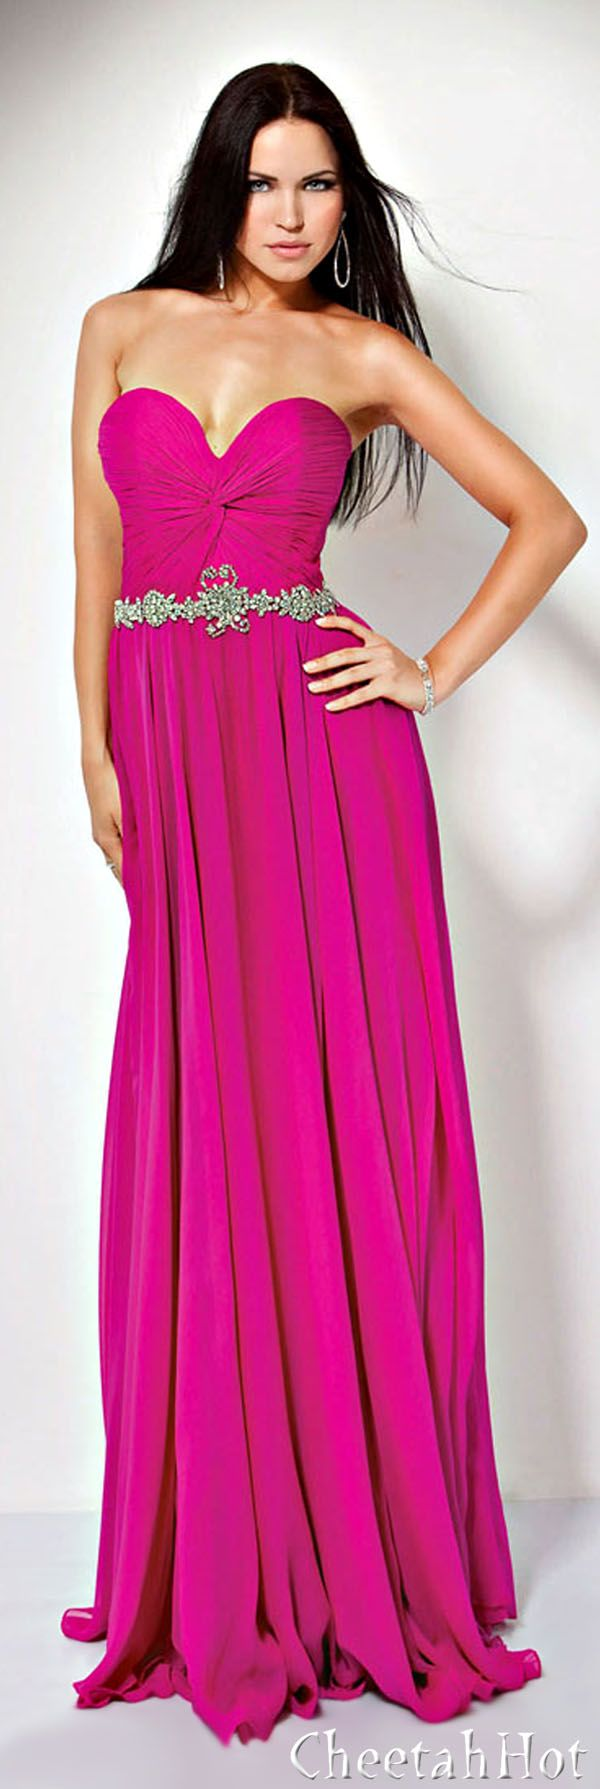 Jovani Pretty Party DRESS